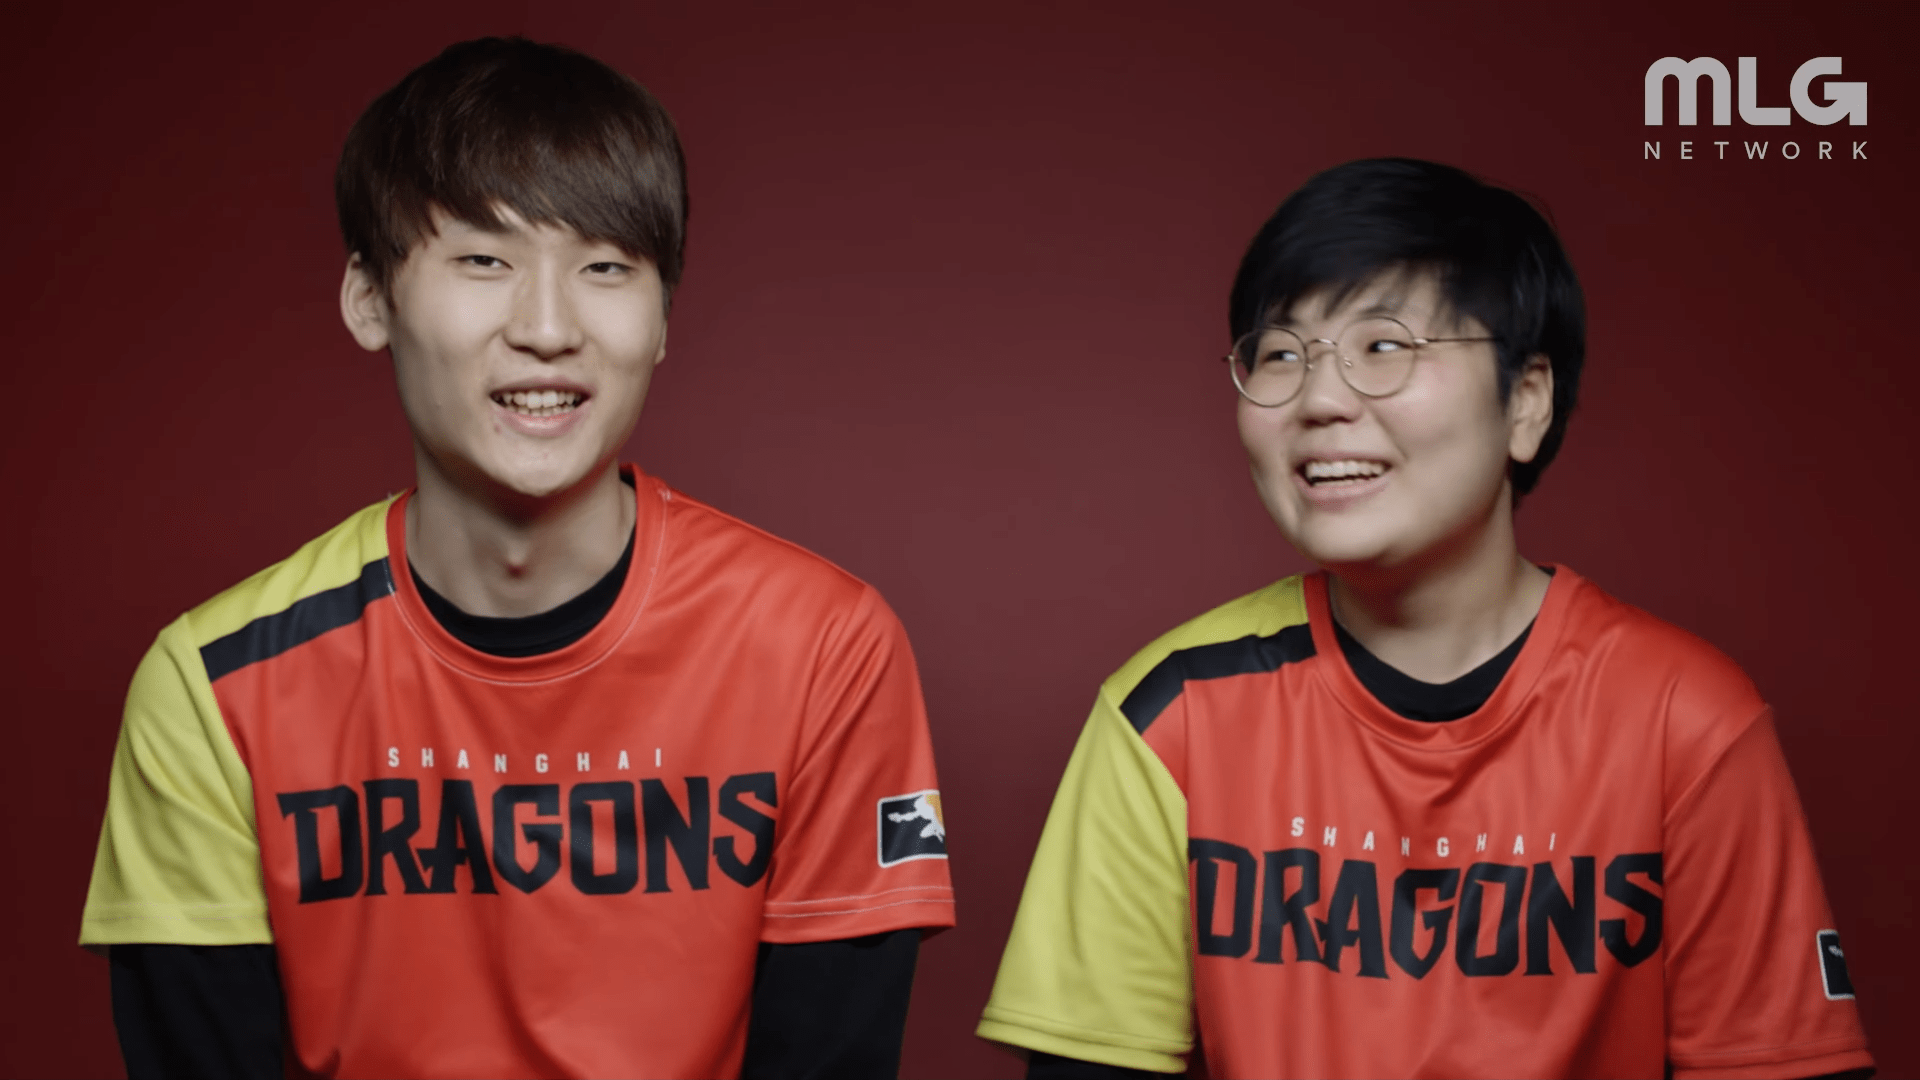 Upcoming Overwatch Invitational, Shanghai Masters 2019, Offers First Look At New OWL Rosters